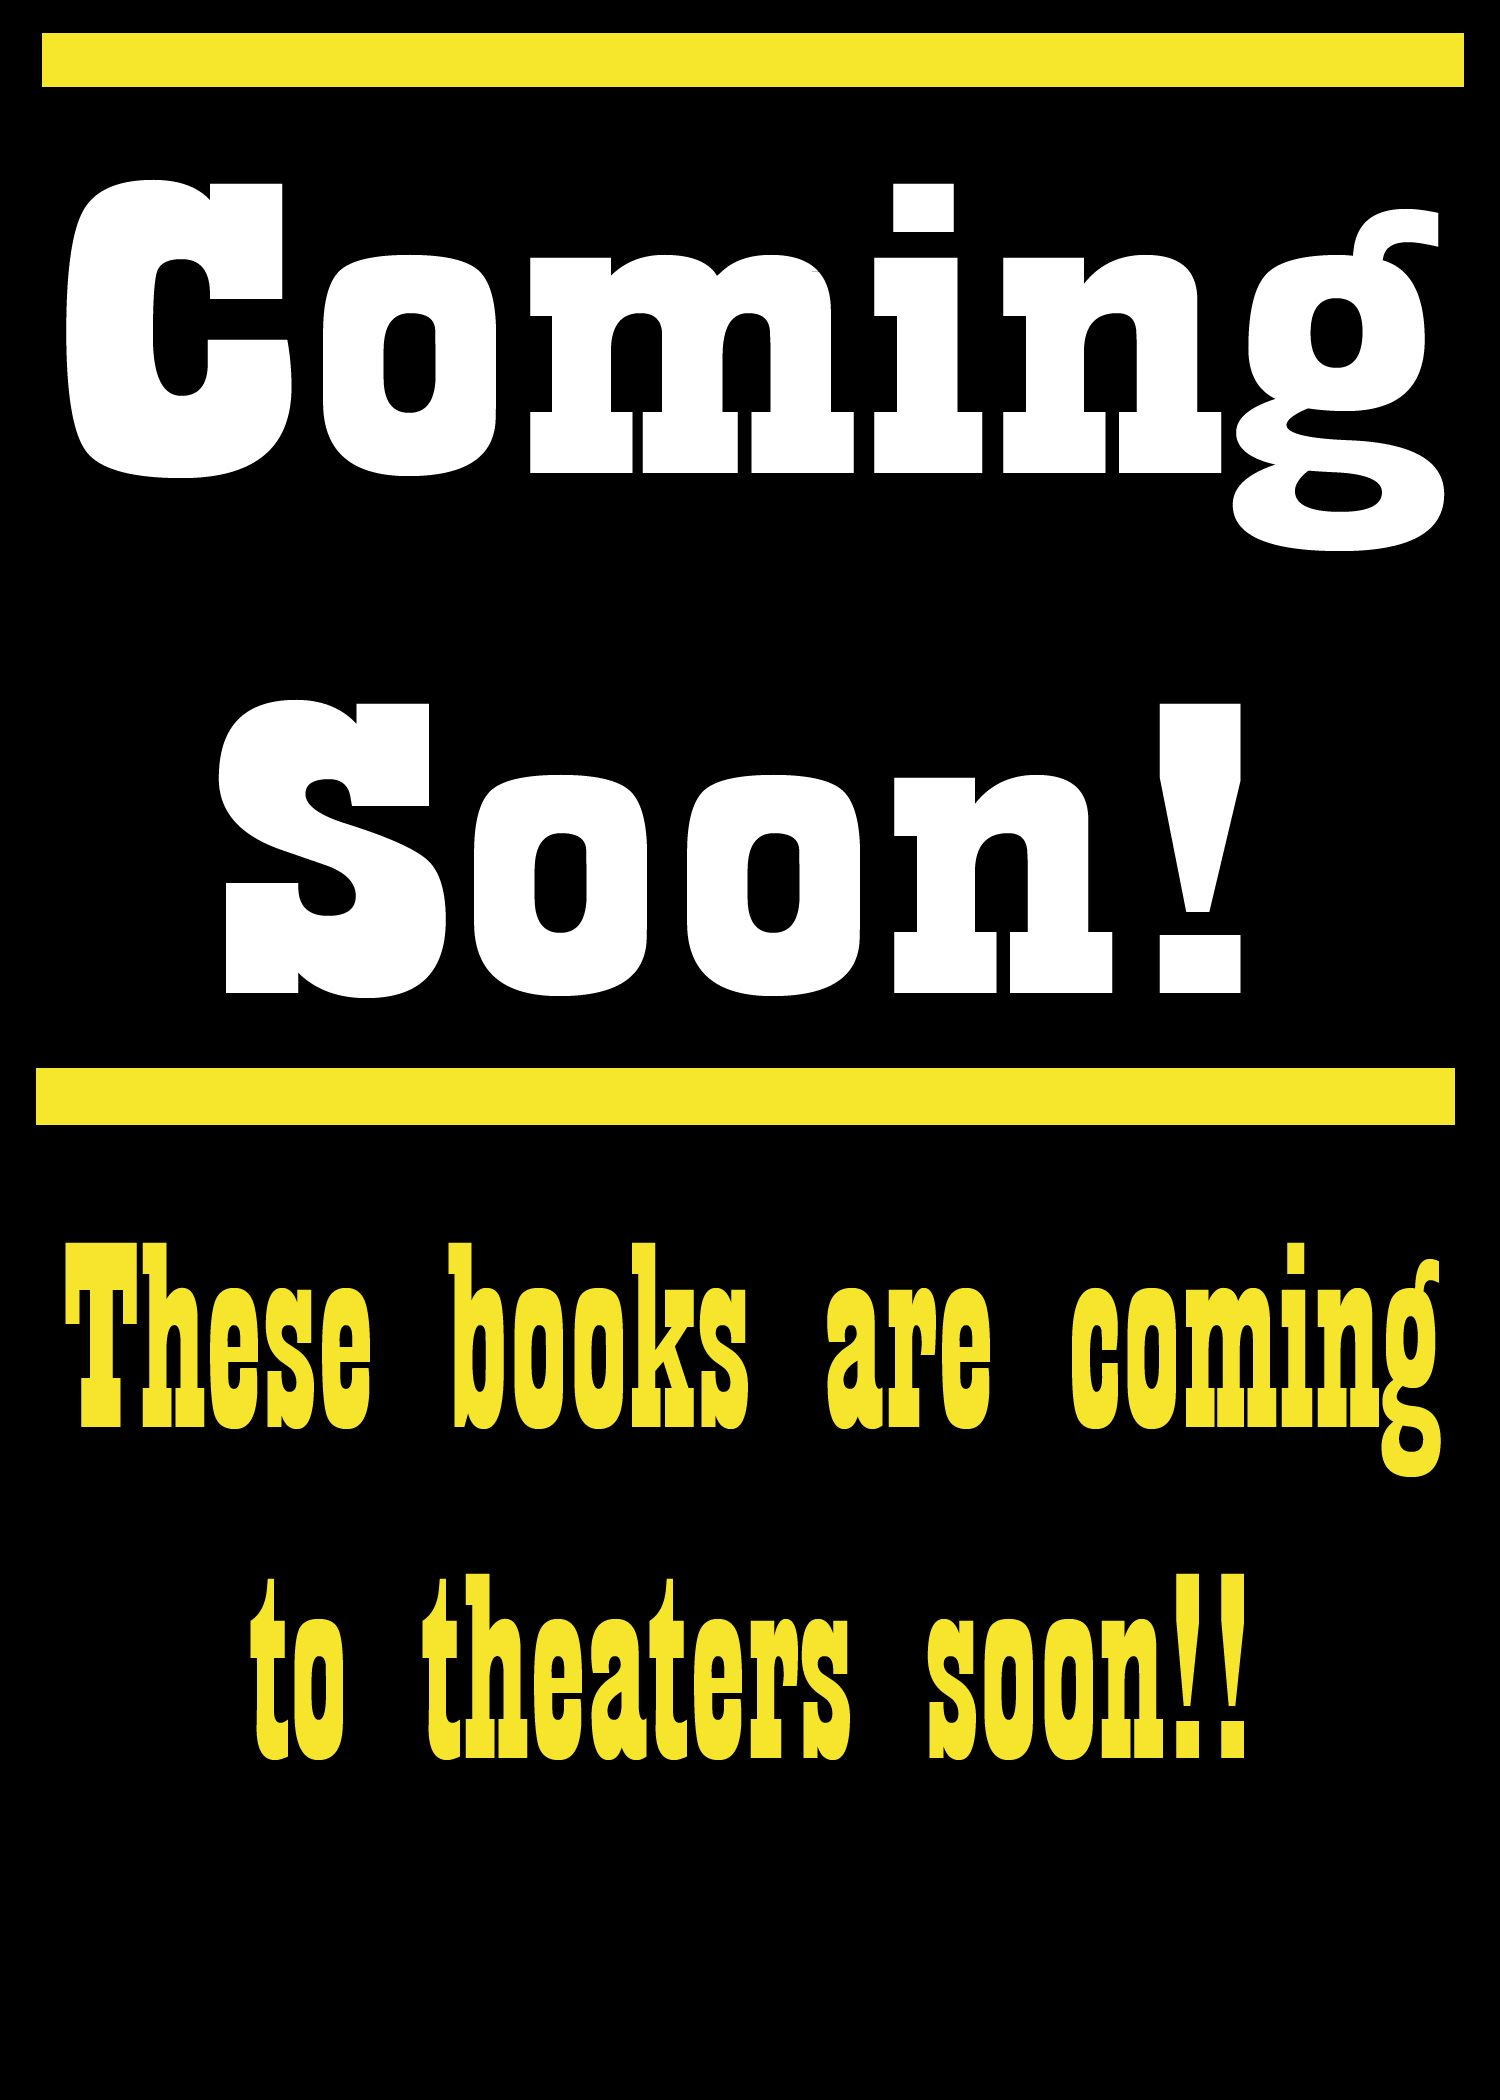 sign coming soon! Perfect for books that are being made into movies